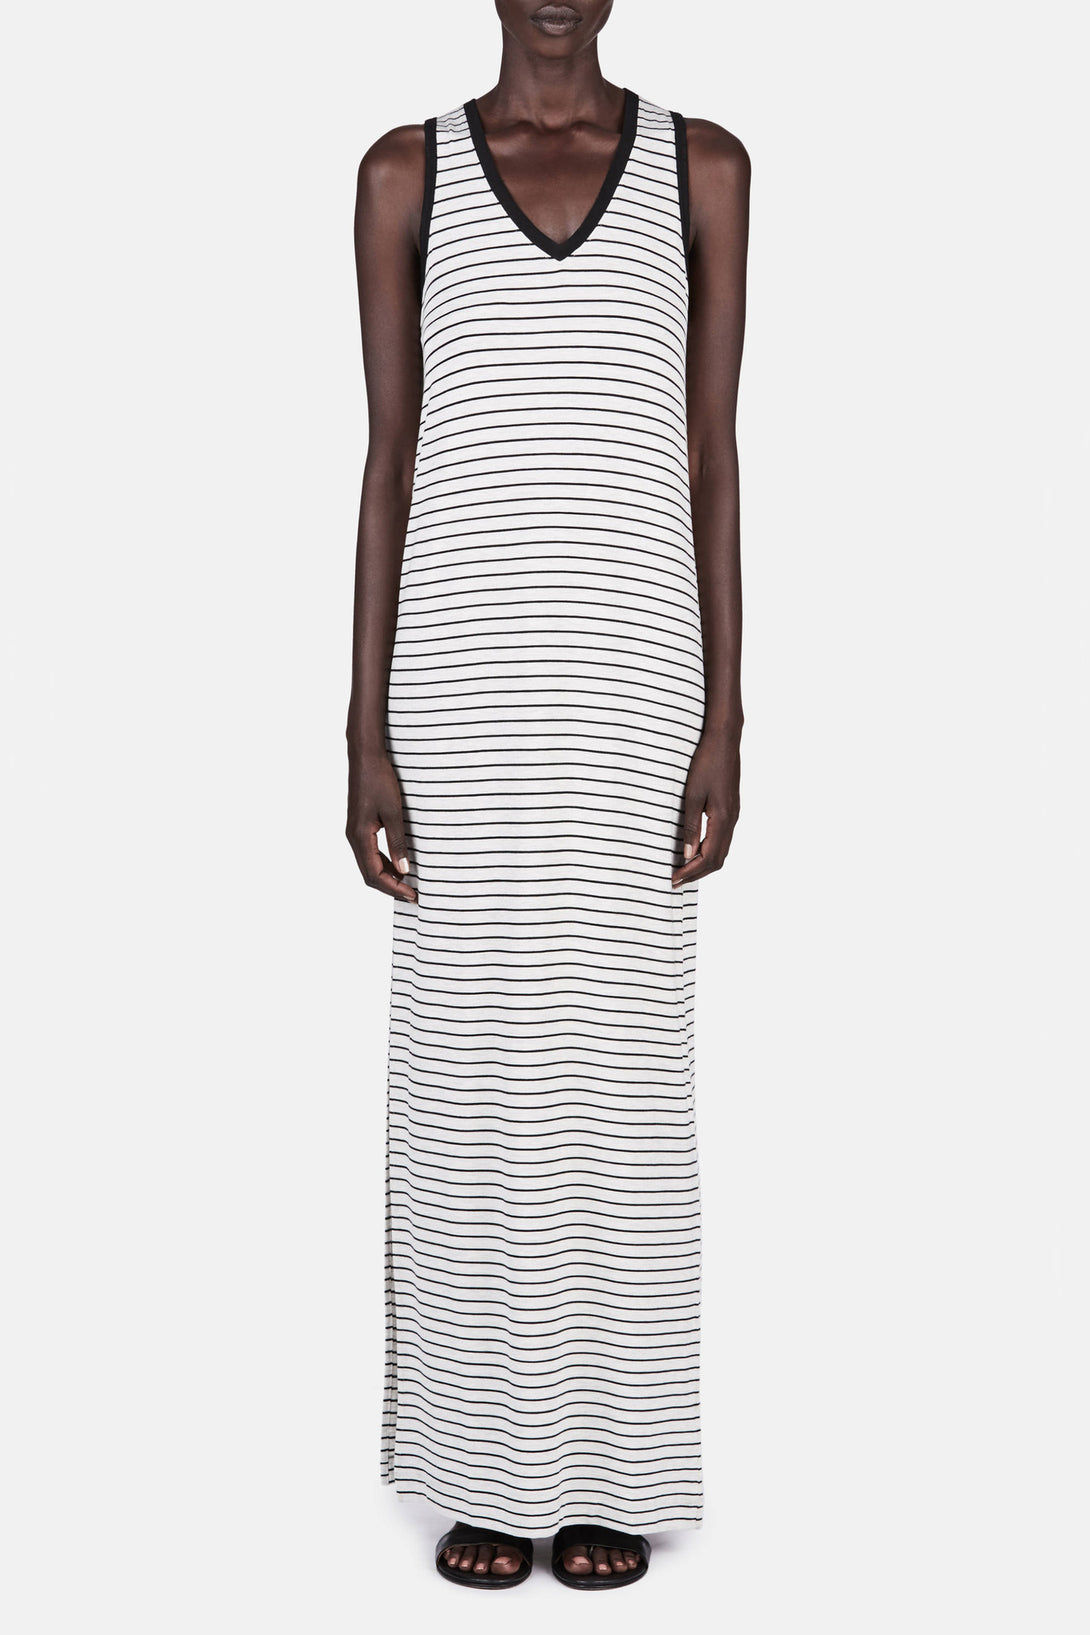 Striped Jersey V Neck Dress - Marble/Black Stripe